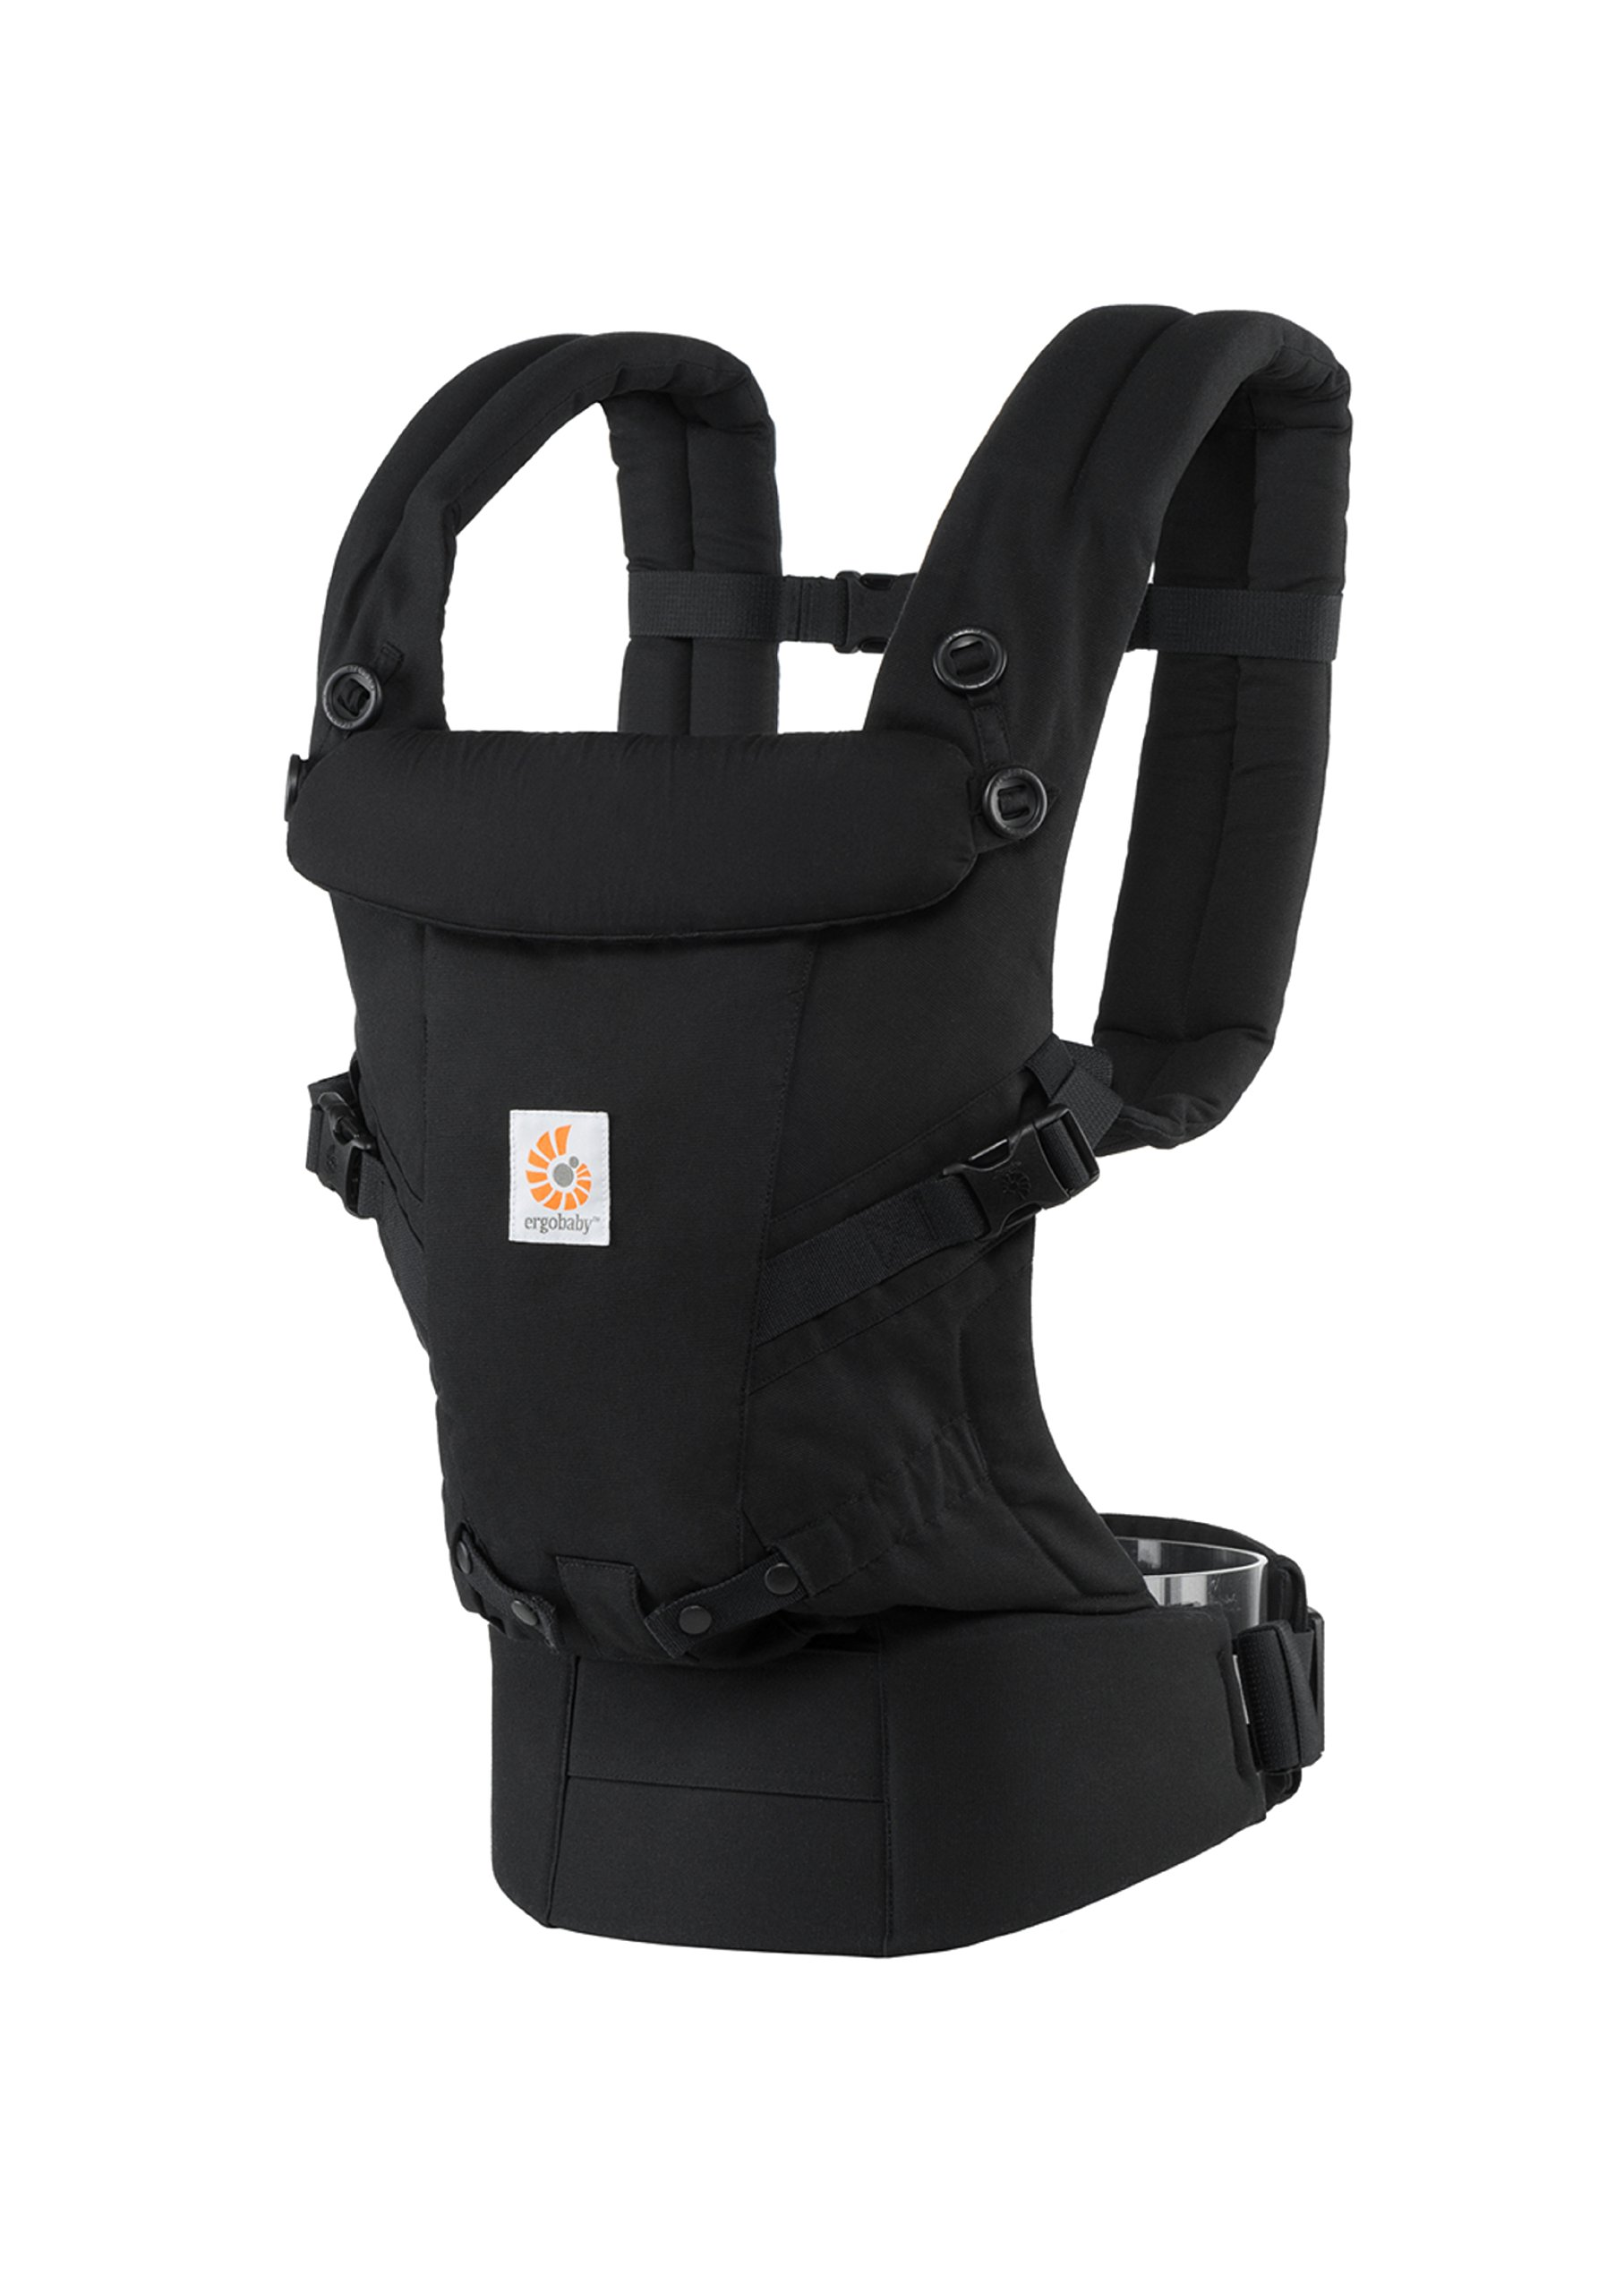 ErgoBaby Adapt Baby Carrier Black Ergobaby Adapt to Every Baby Easy. Adjustable. Newborn to toddler. 2